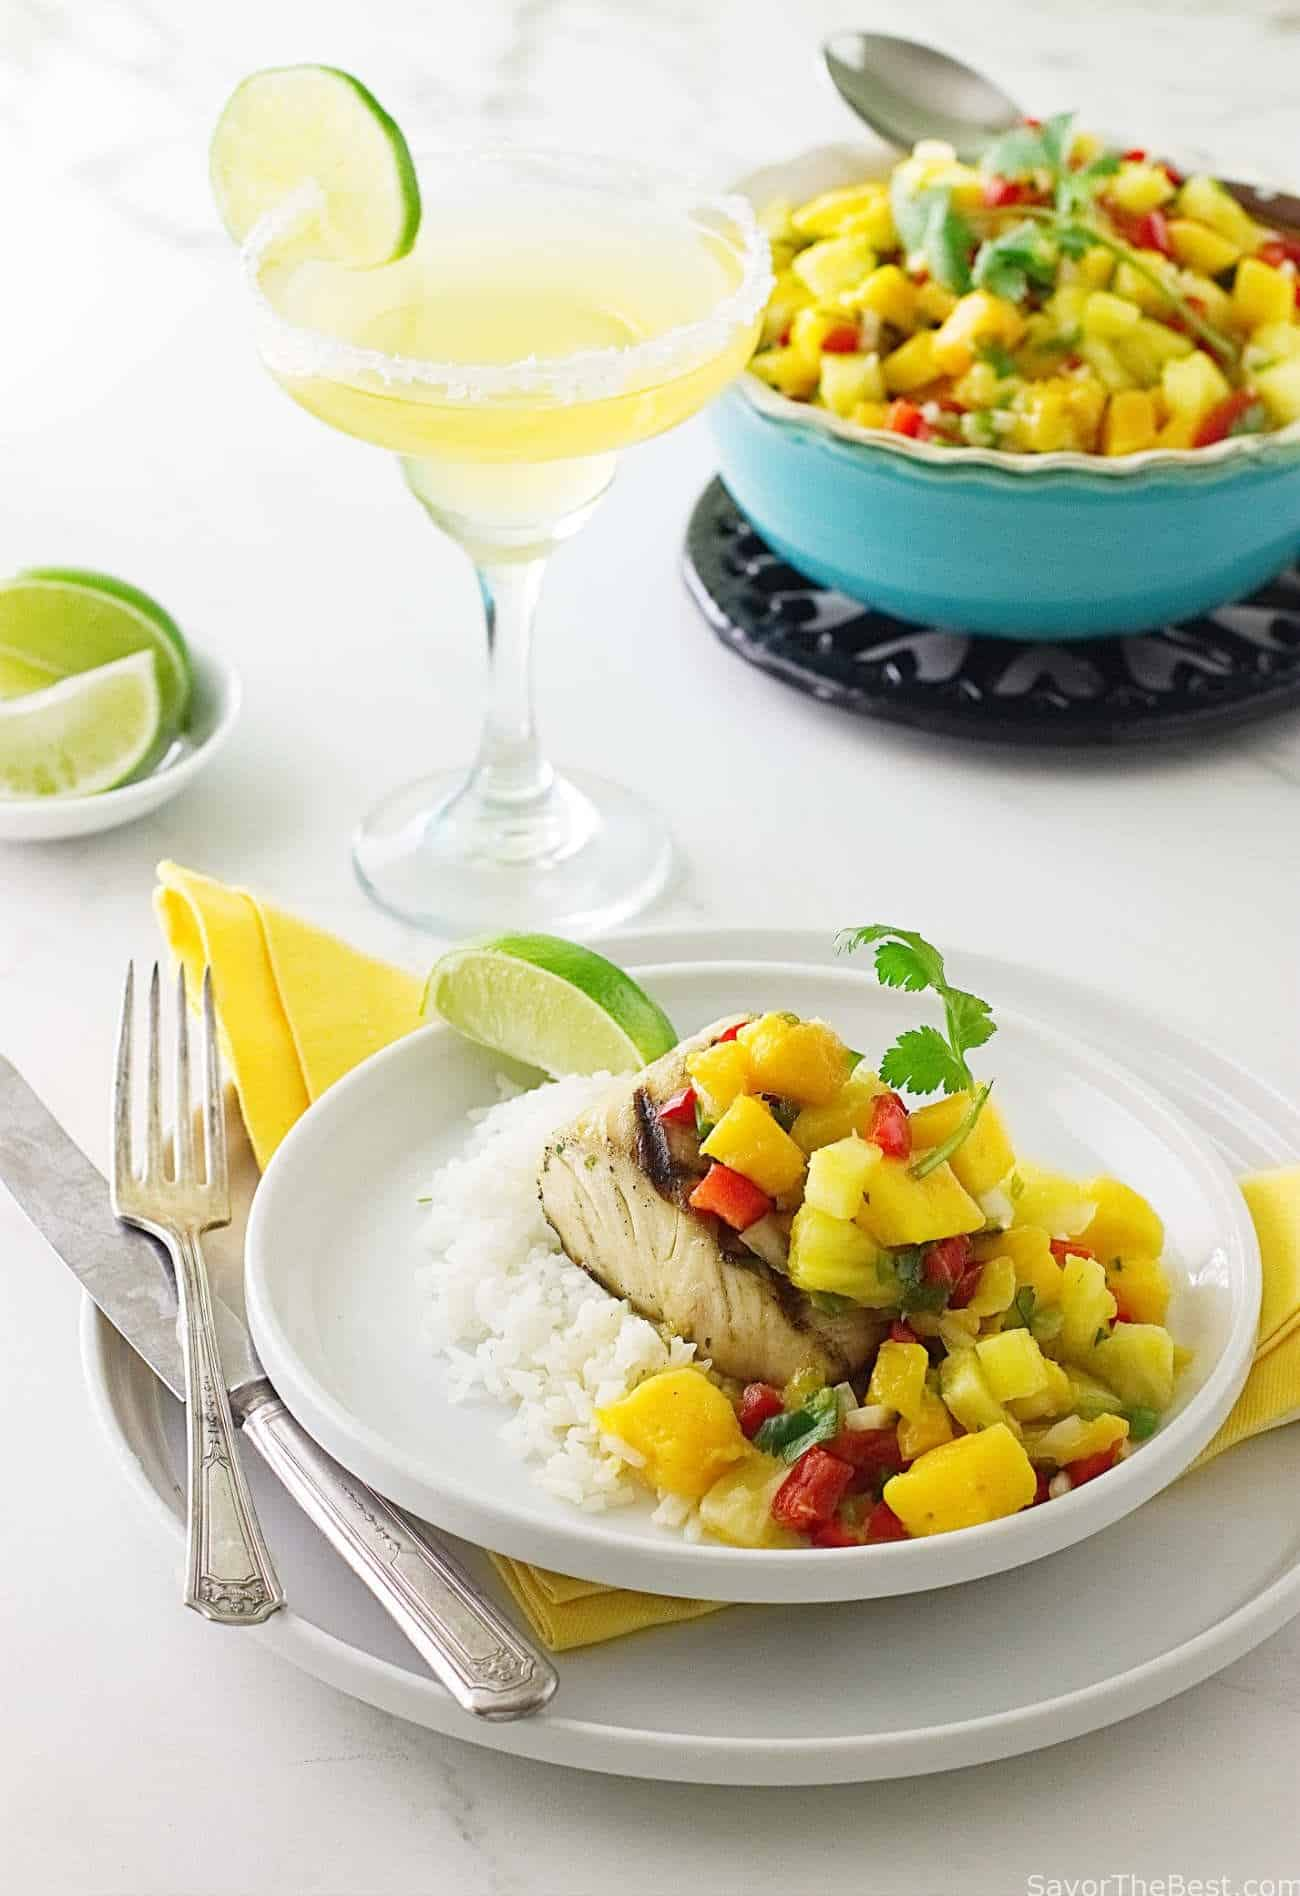 Grilled Mahi-Mahi with Mango Salsa - Savor the Best